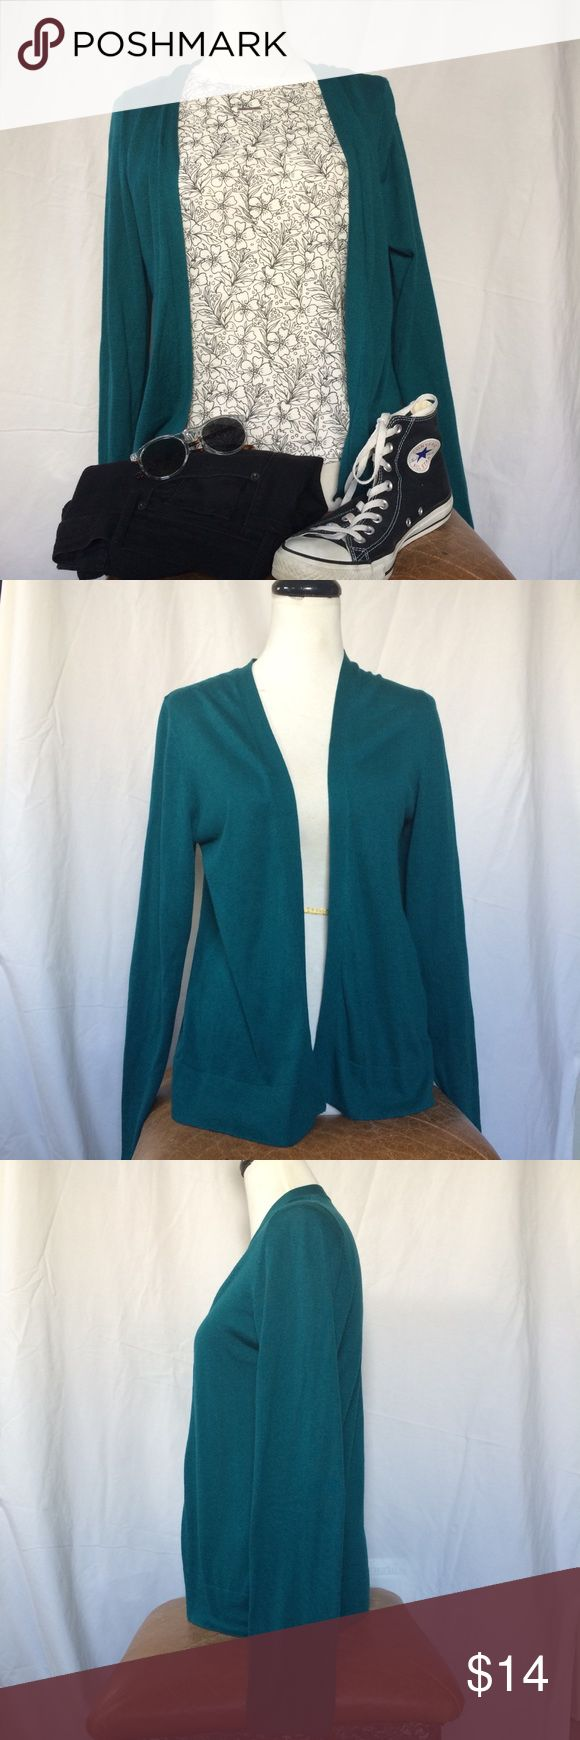 Soft & Cozy Teal Cardigan Only worn once. Perfect condition except for cut off material tag.   A soft, comfy cardigan in a beautiful deep teal color. Material is smooth and soft, not too heavy but not lightweight either. Perfect for spring days and cool summer nights.   Size large, fits true to size. See measurement pics for details.   Accessories not included. Cardigan only, but flower shirt is for sale separately. Old Navy Sweaters Cardigans